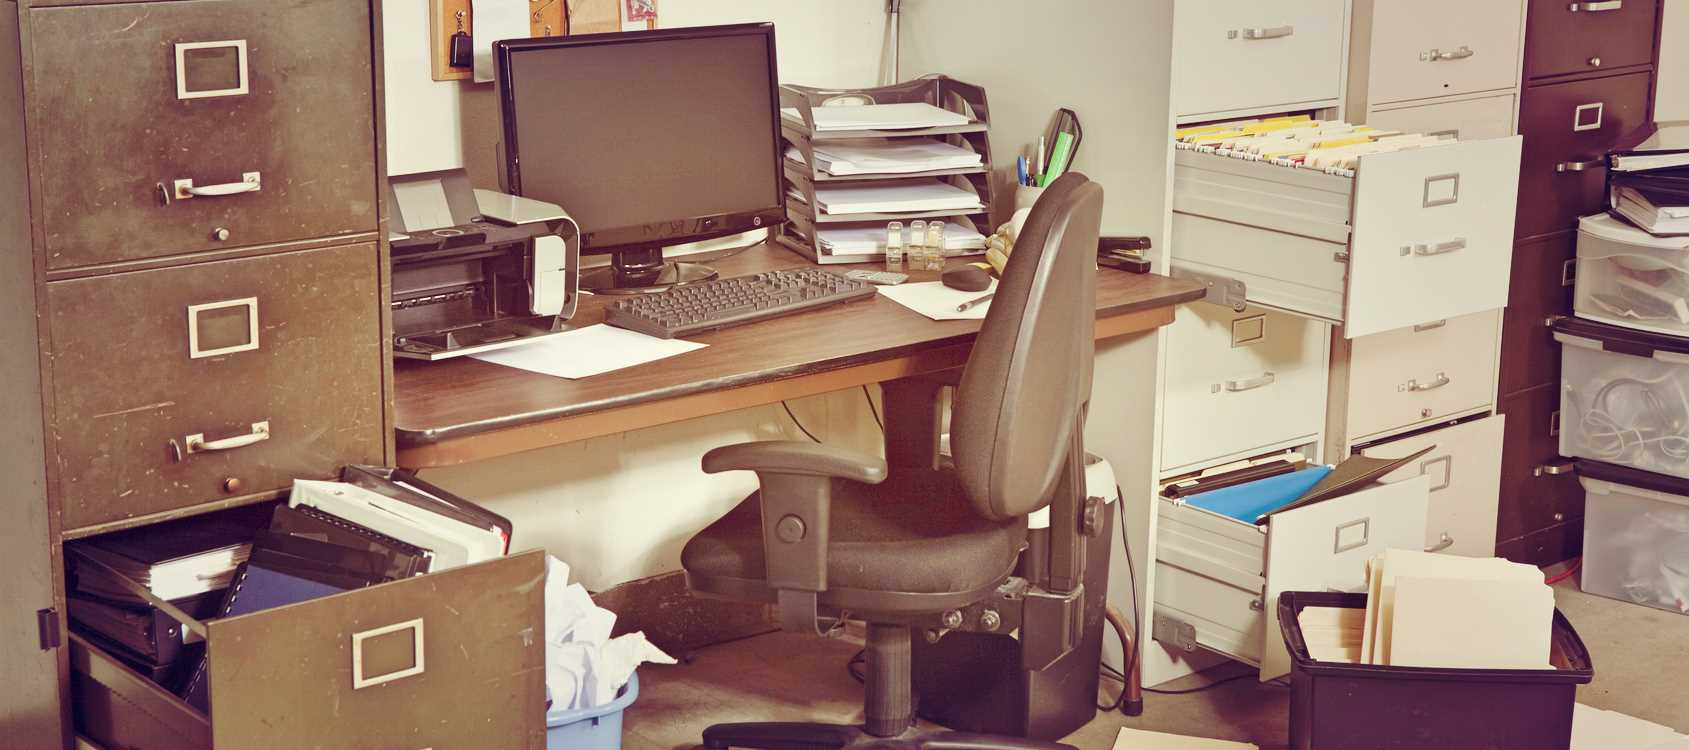 Office Clean Out-Springfield Dumpster Rental & Junk Removal Services-We Offer Residential and Commercial Dumpster Removal Services, Portable Toilet Services, Dumpster Rentals, Bulk Trash, Demolition Removal, Junk Hauling, Rubbish Removal, Waste Containers, Debris Removal, 20 & 30 Yard Container Rentals, and much more!